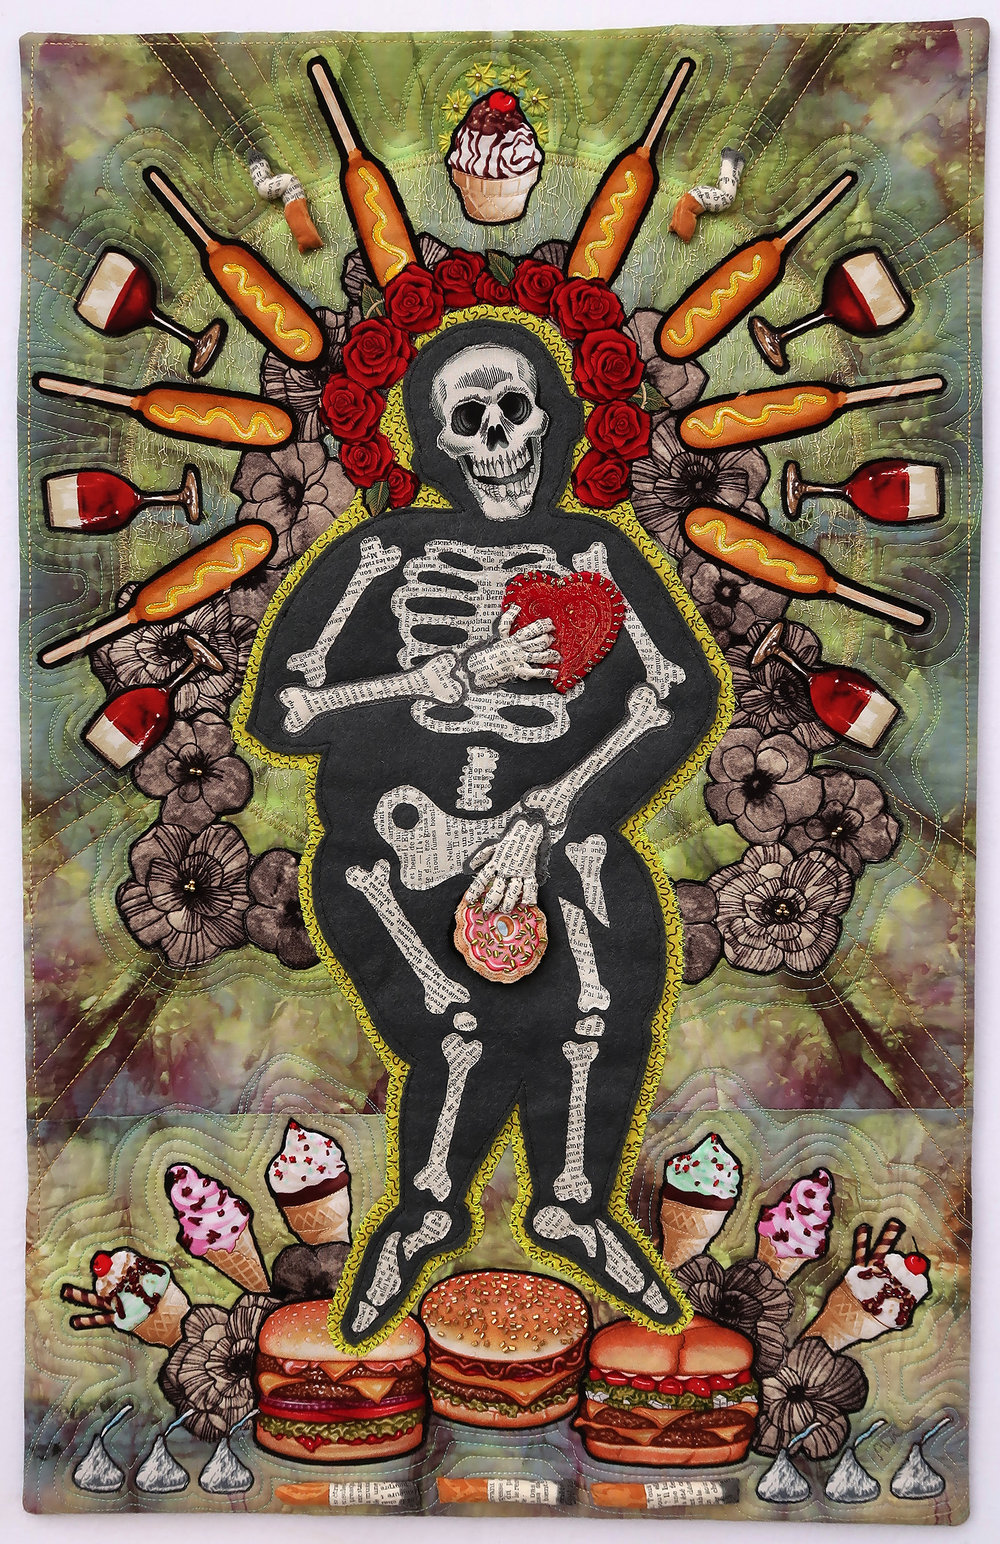 """Dying to Eat - 16"""" x 26""""I explored the goddess of overindulgence and poor lifestyle. This goddess emerged mythically, like Botticelli's Venus. She is born into a divine love of junk food, booze and smokes that are her driving life force. While there are subtleties (can you spot them?) the main message of my piece is a straightforward cautionary tale of how poor consumption choices can send us to an early grave. Are you eating to live...or dying to eat?"""